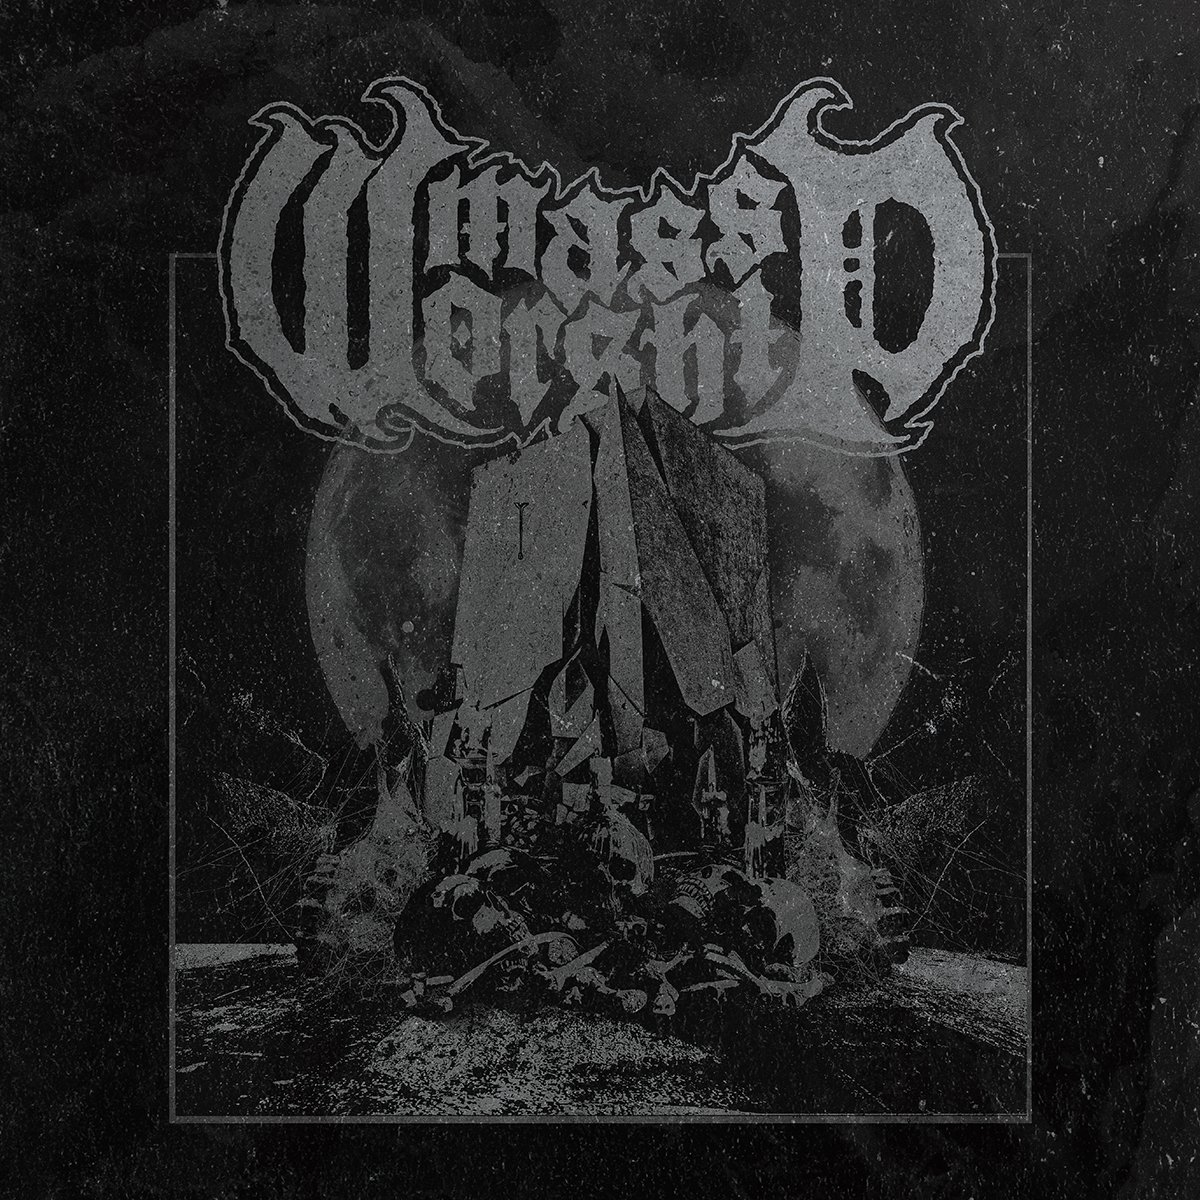 Review: Mass Worship – Mass Worship